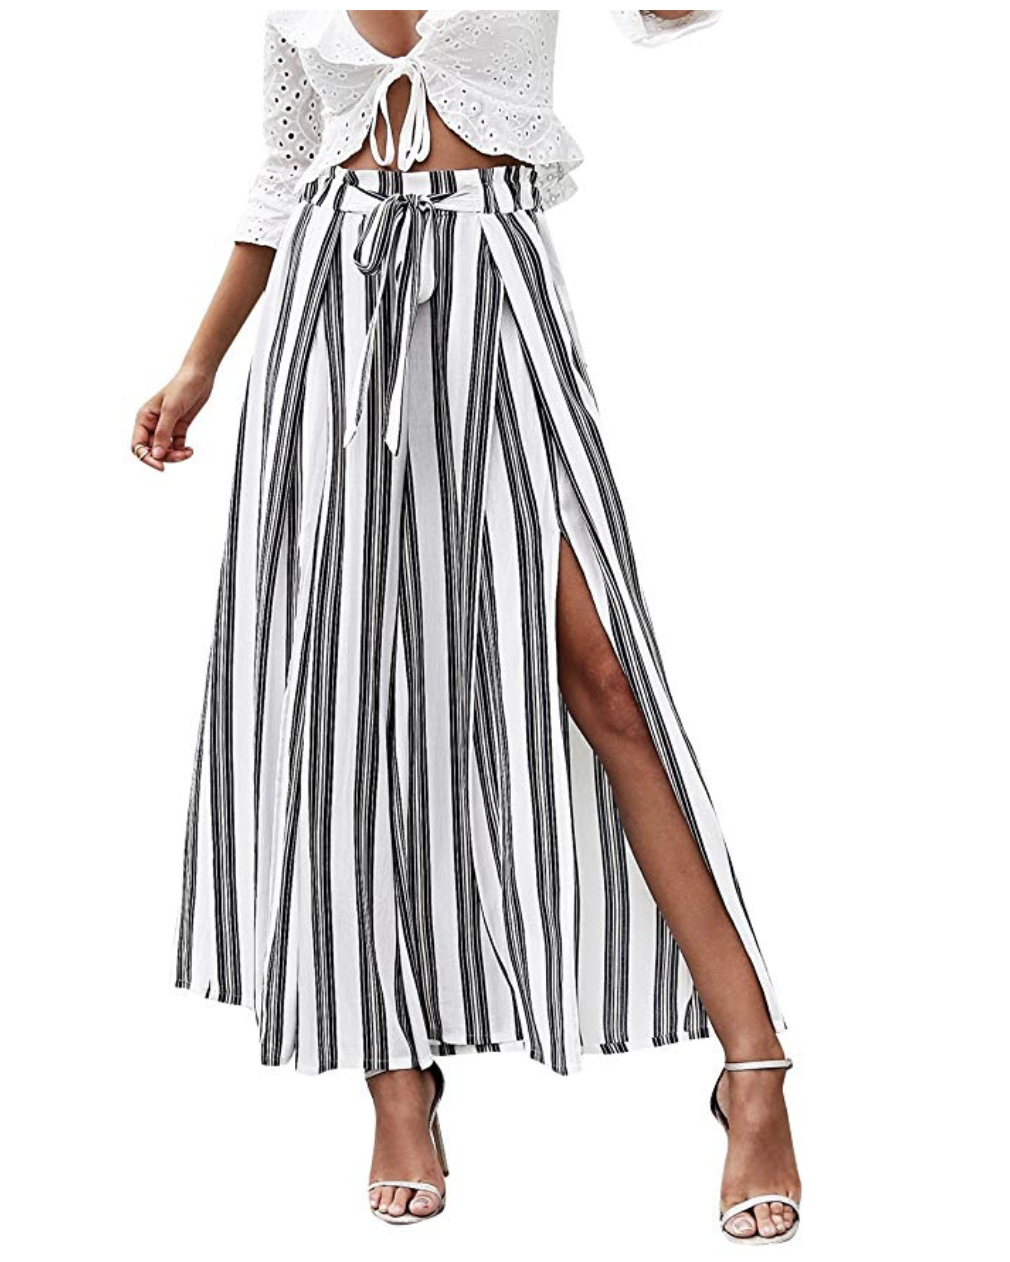 Amazon shopping ideas | Amazon sale | Amazon spring fashion | spring clothing | slit skirt | black and white skirt | stripe skirt